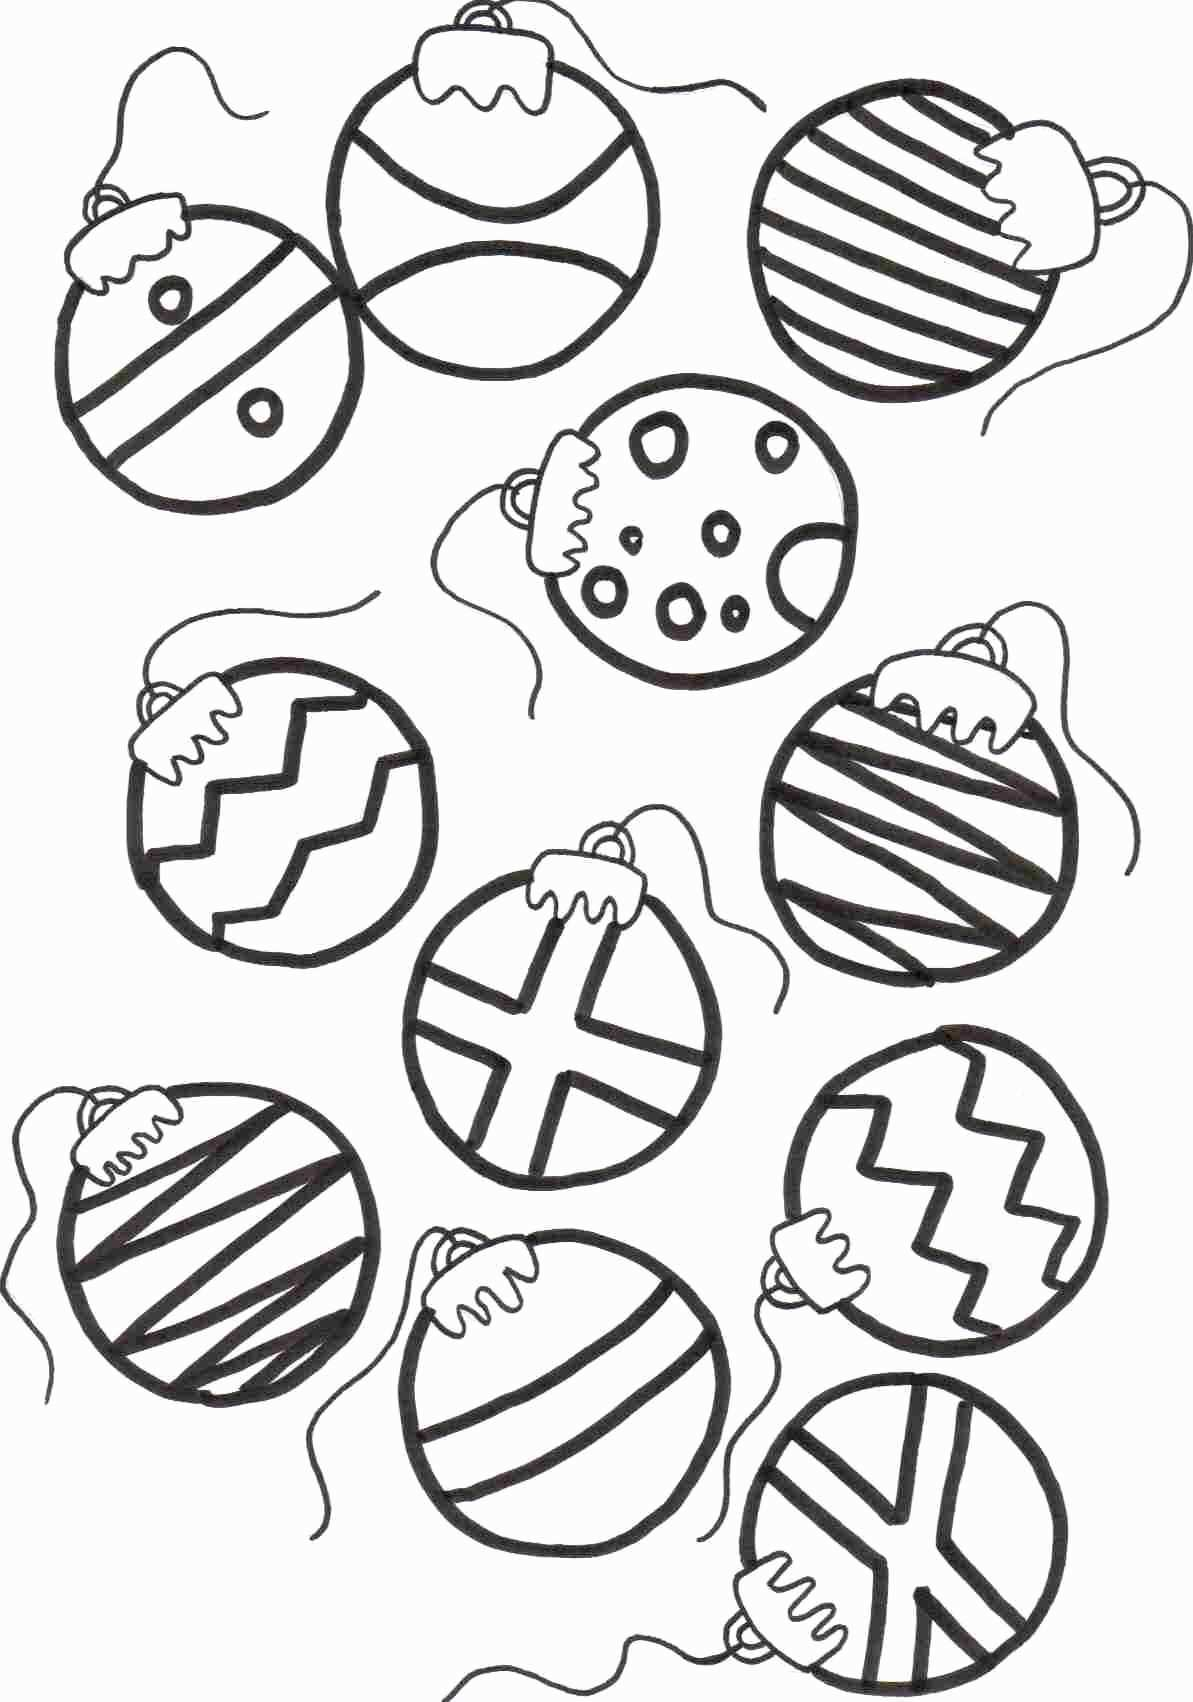 Christmas Garland Coloring Pages With Legend Of The Wreath New Candle Page